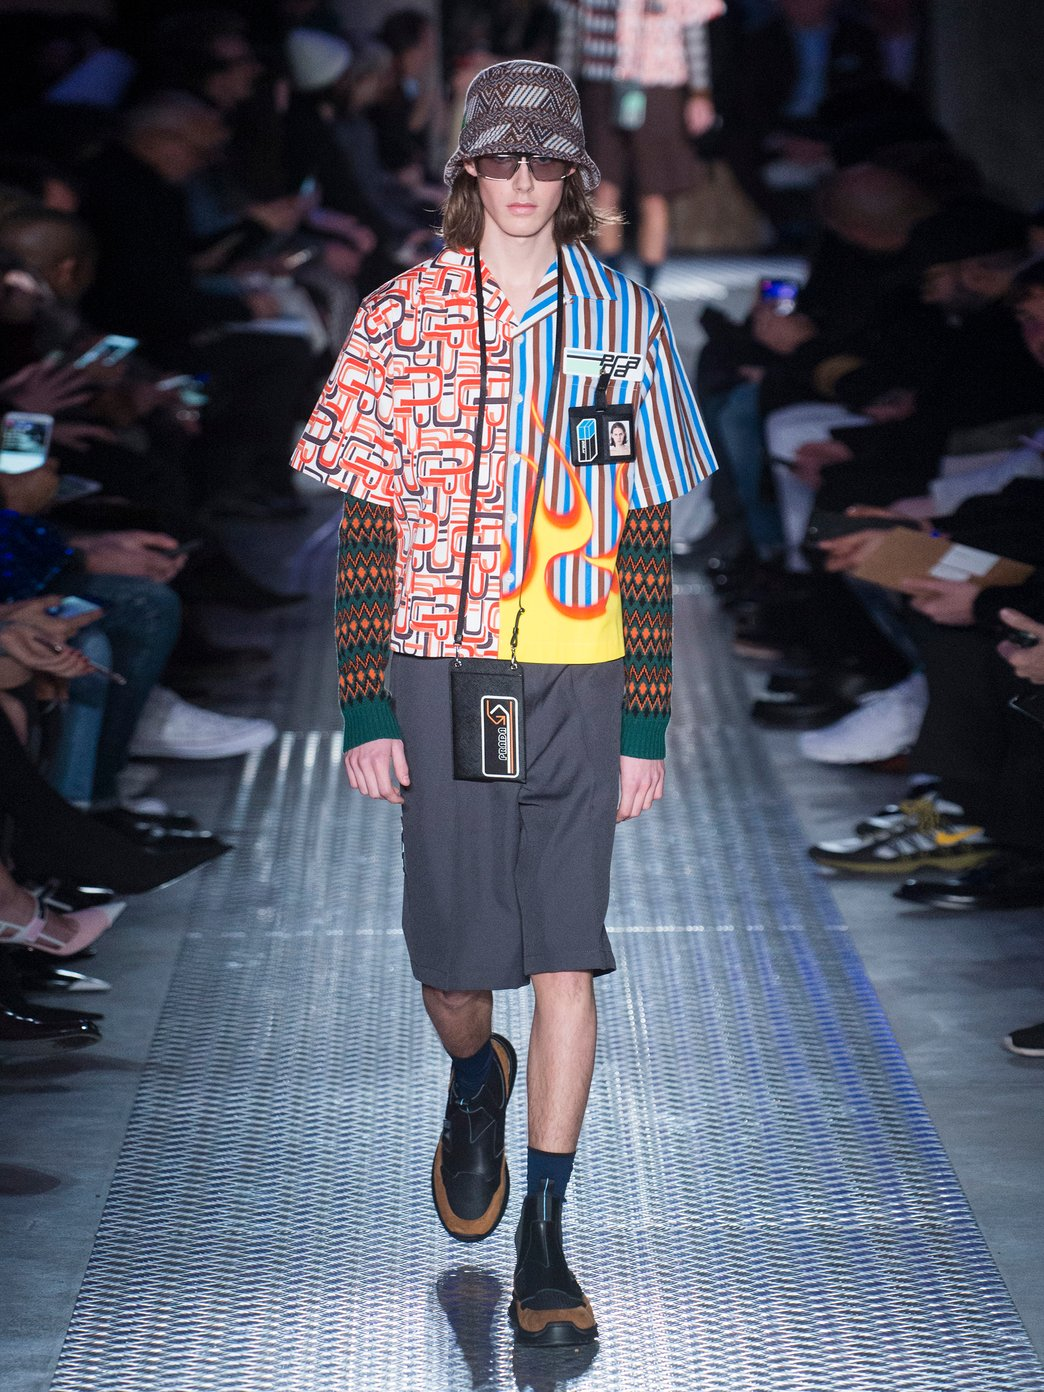 PRADA: The Bowling Shirt Taking Over the Game